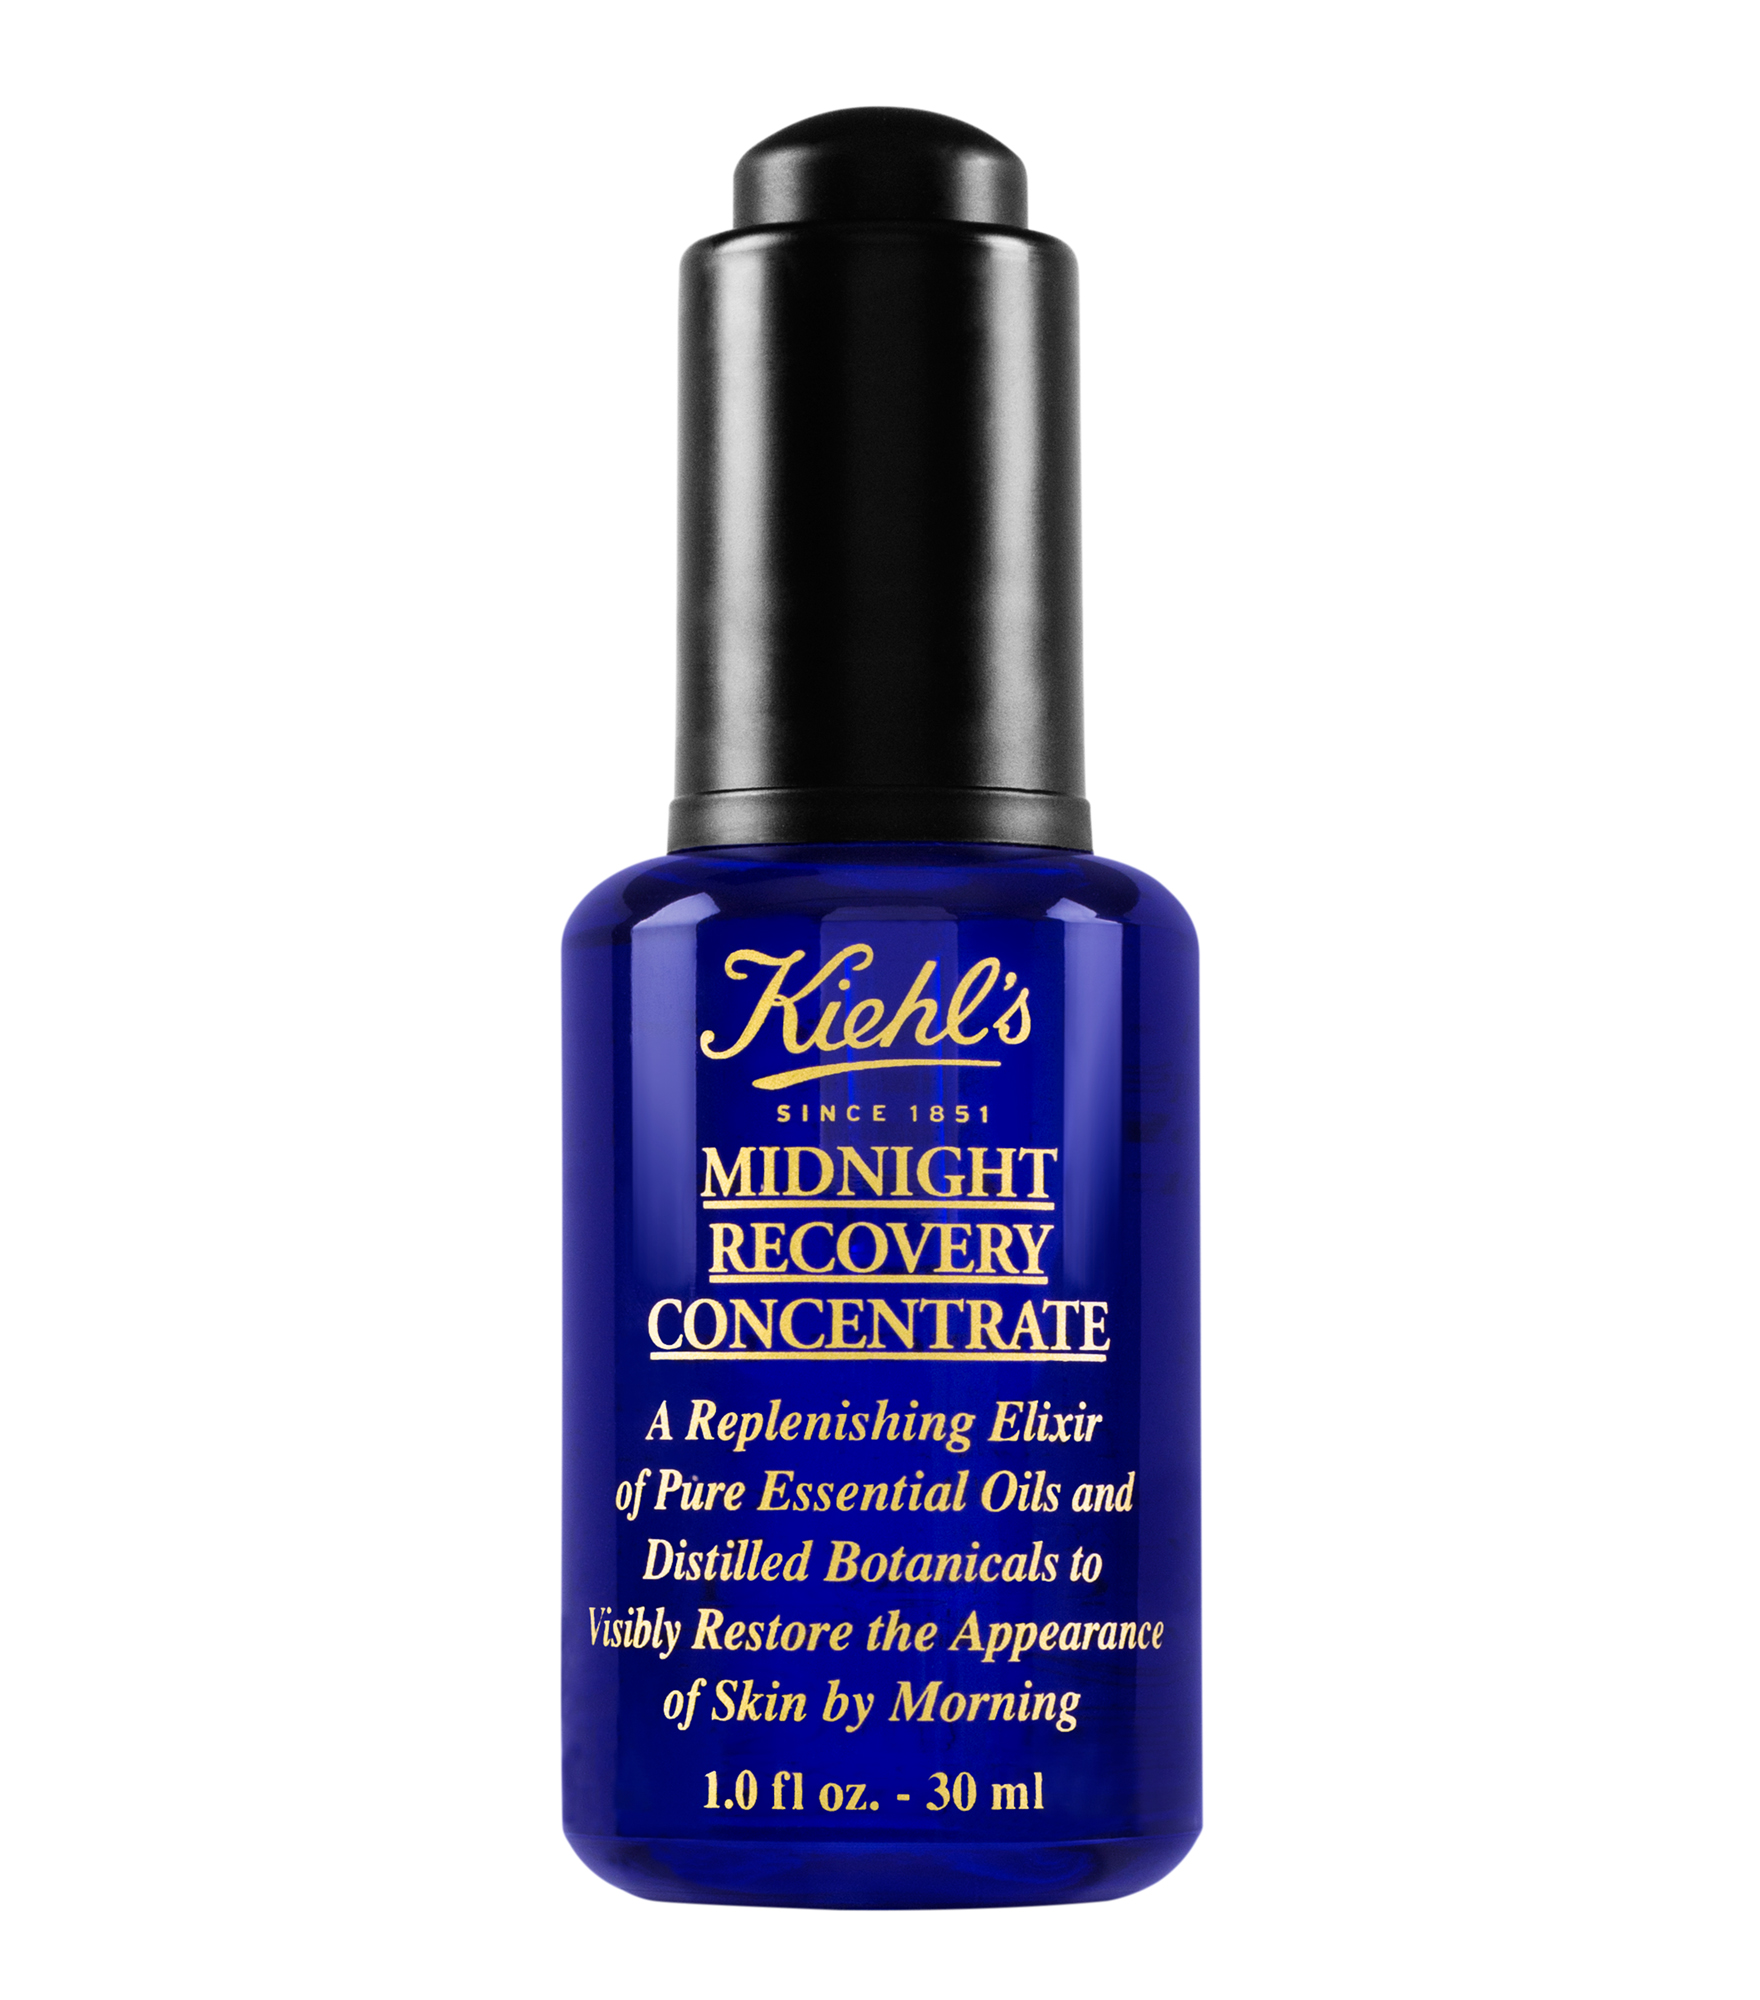 Image result for Midnight Recovery Concentrate KIEHL'S SINCE 1851